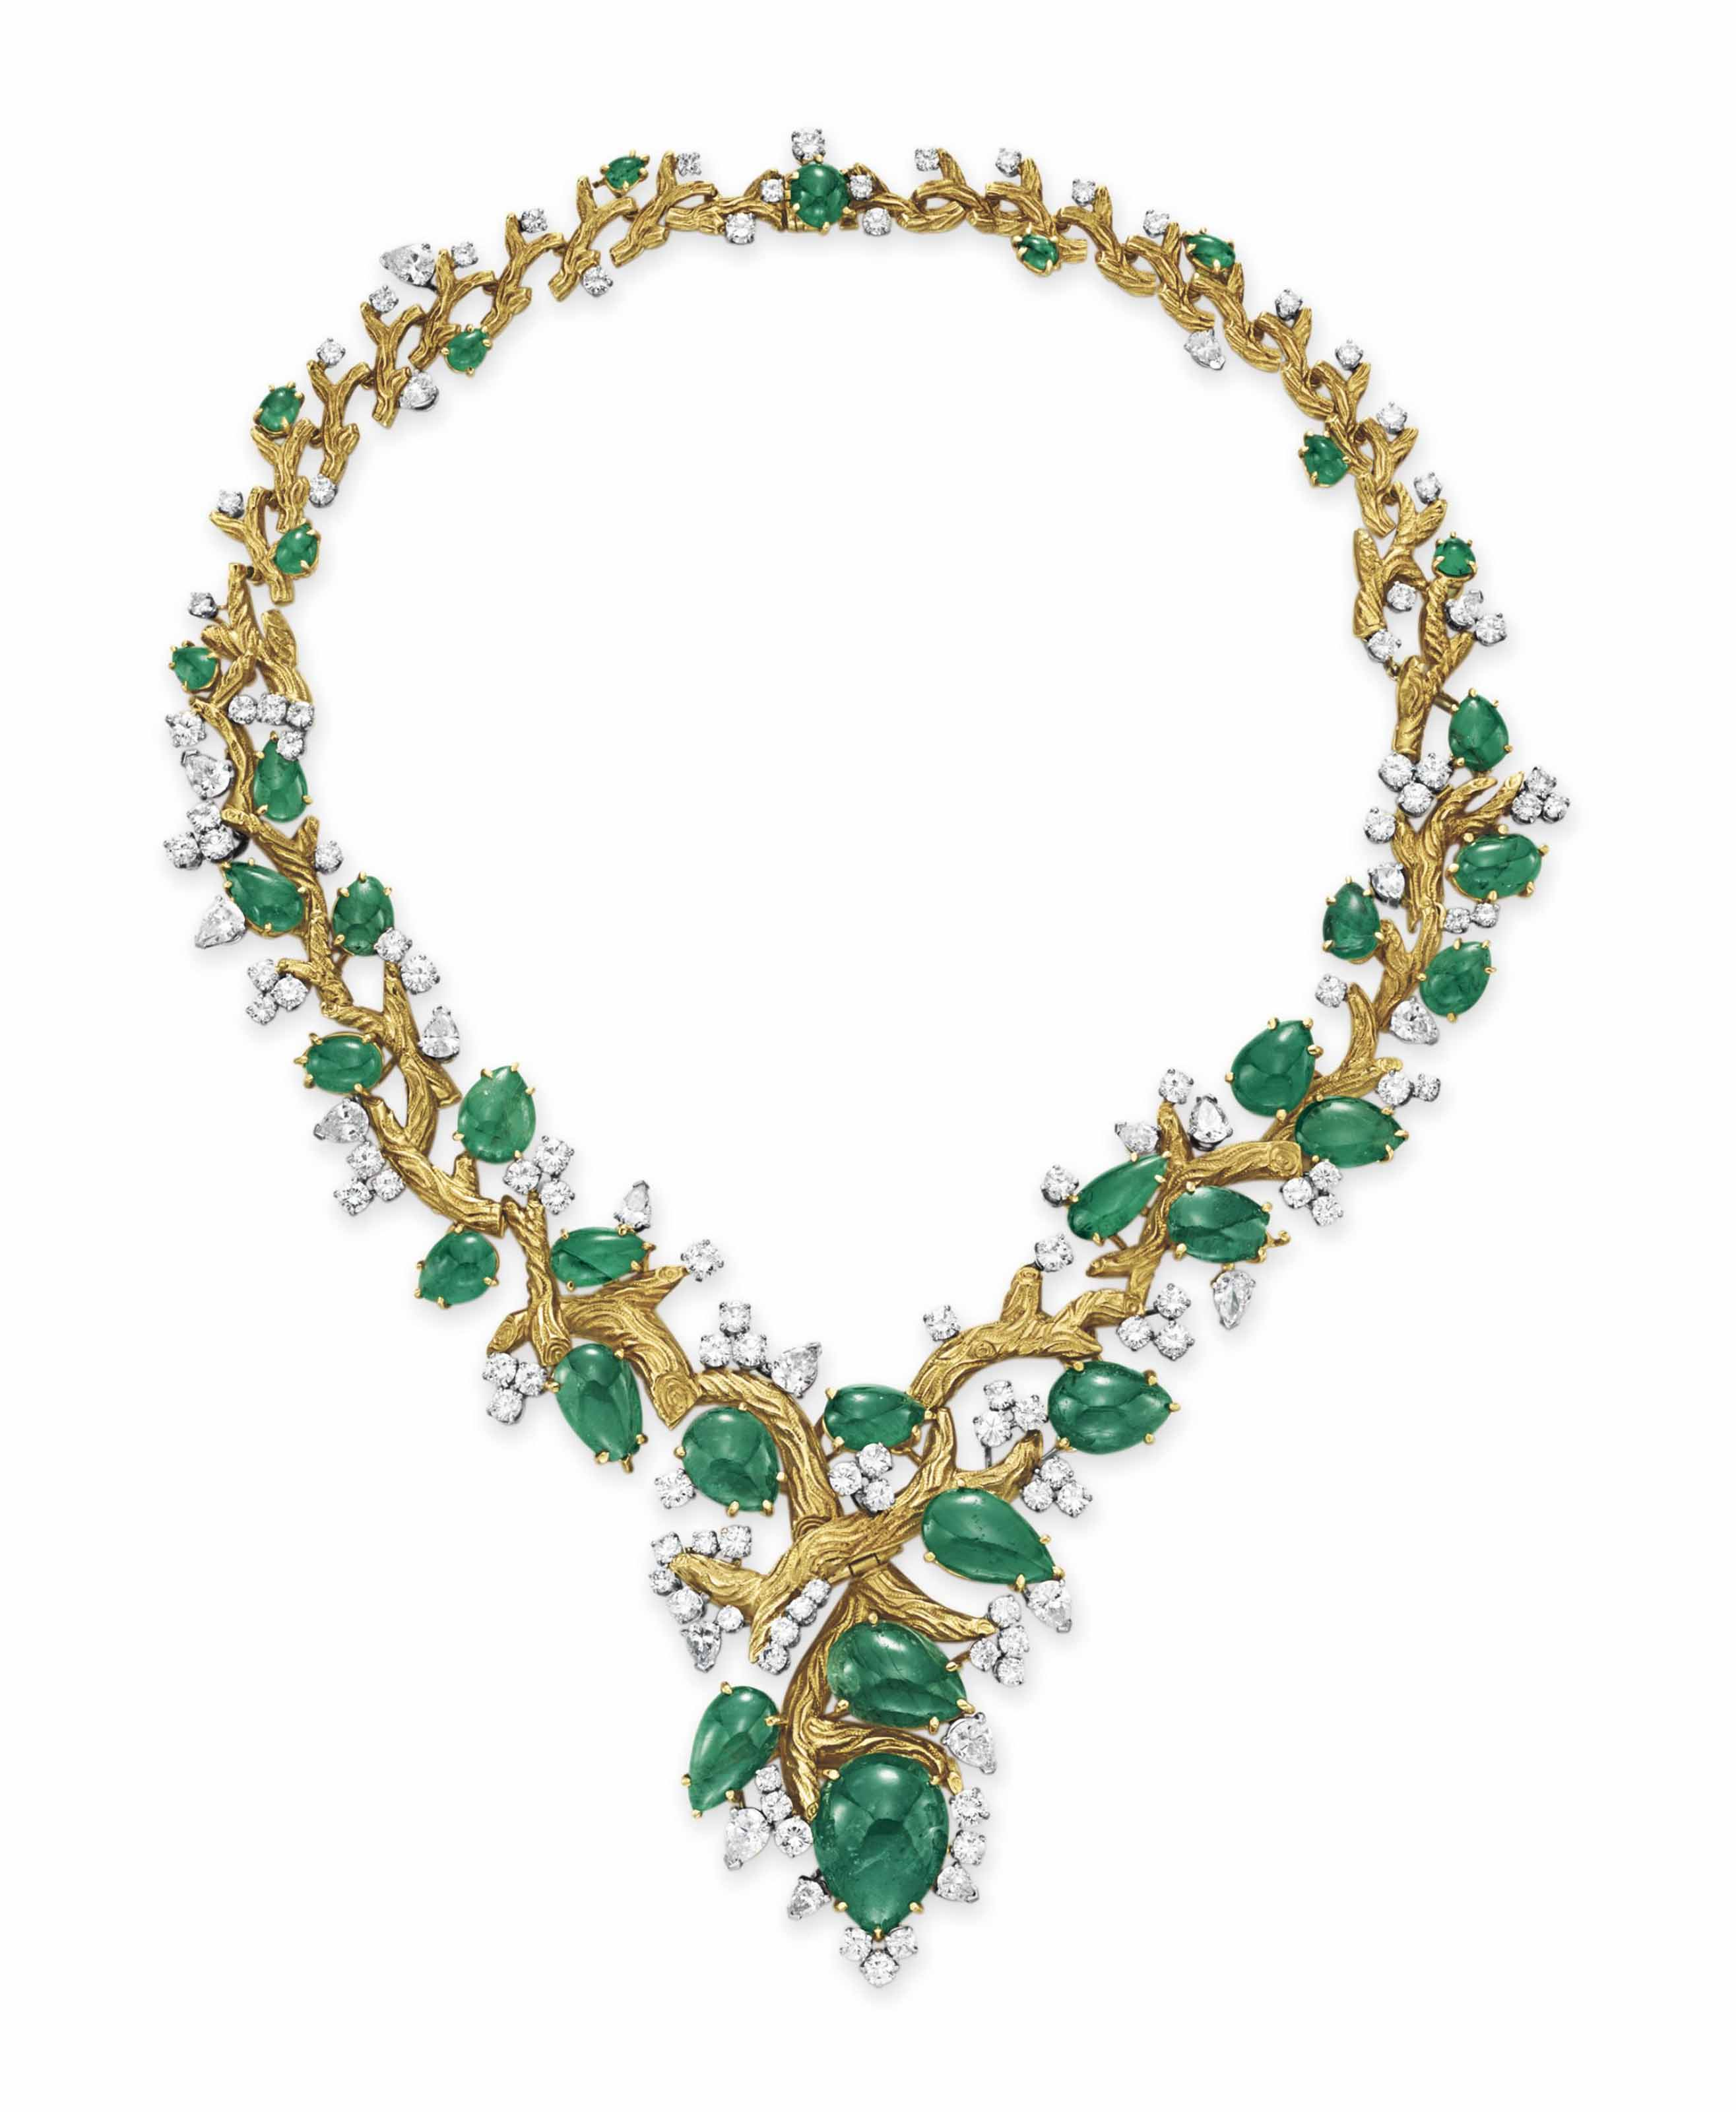 AN EMERALD, DIAMOND AND GOLD NECKLACE | Christie's